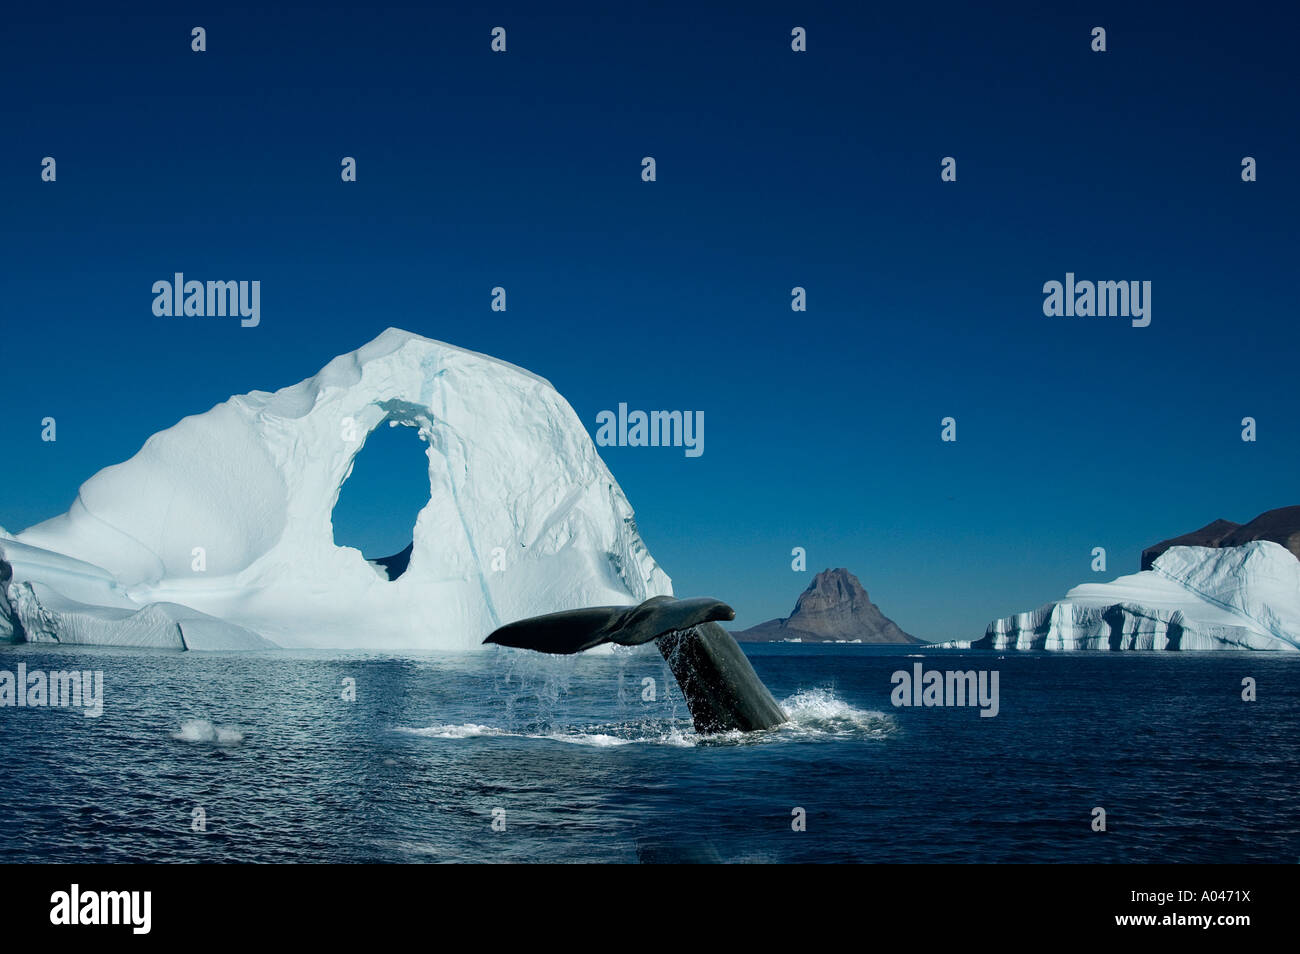 Diving Spermwhale in front of Iceberg, Umanak, Greenland - Stock Image